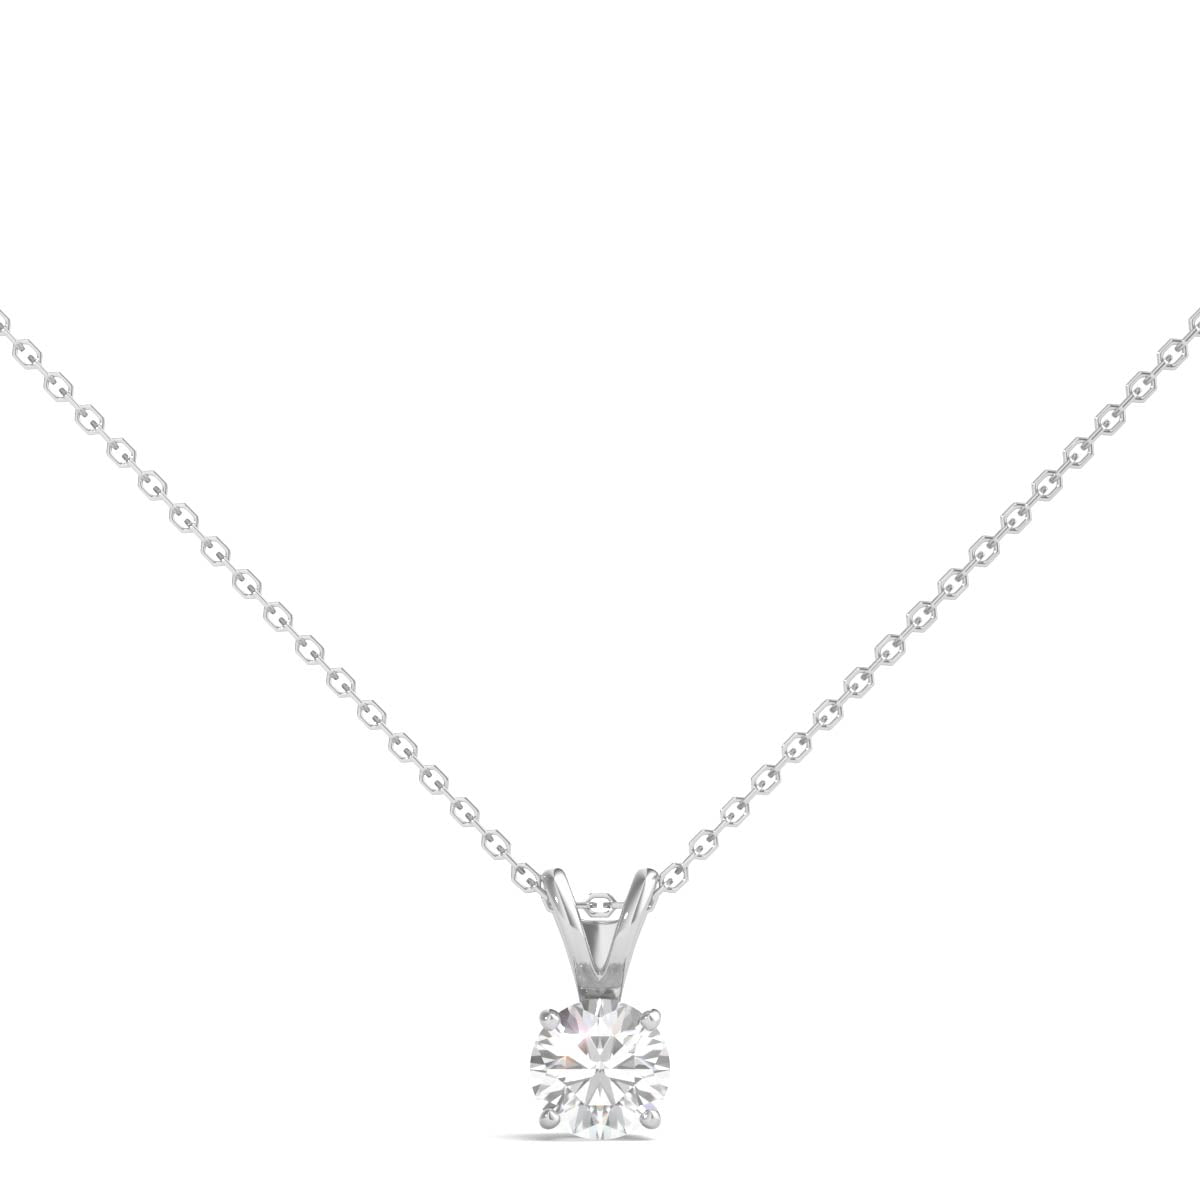 1 4 Ct Tw Solitaire Diamond Pendant AGS Certified KL I1 14K White